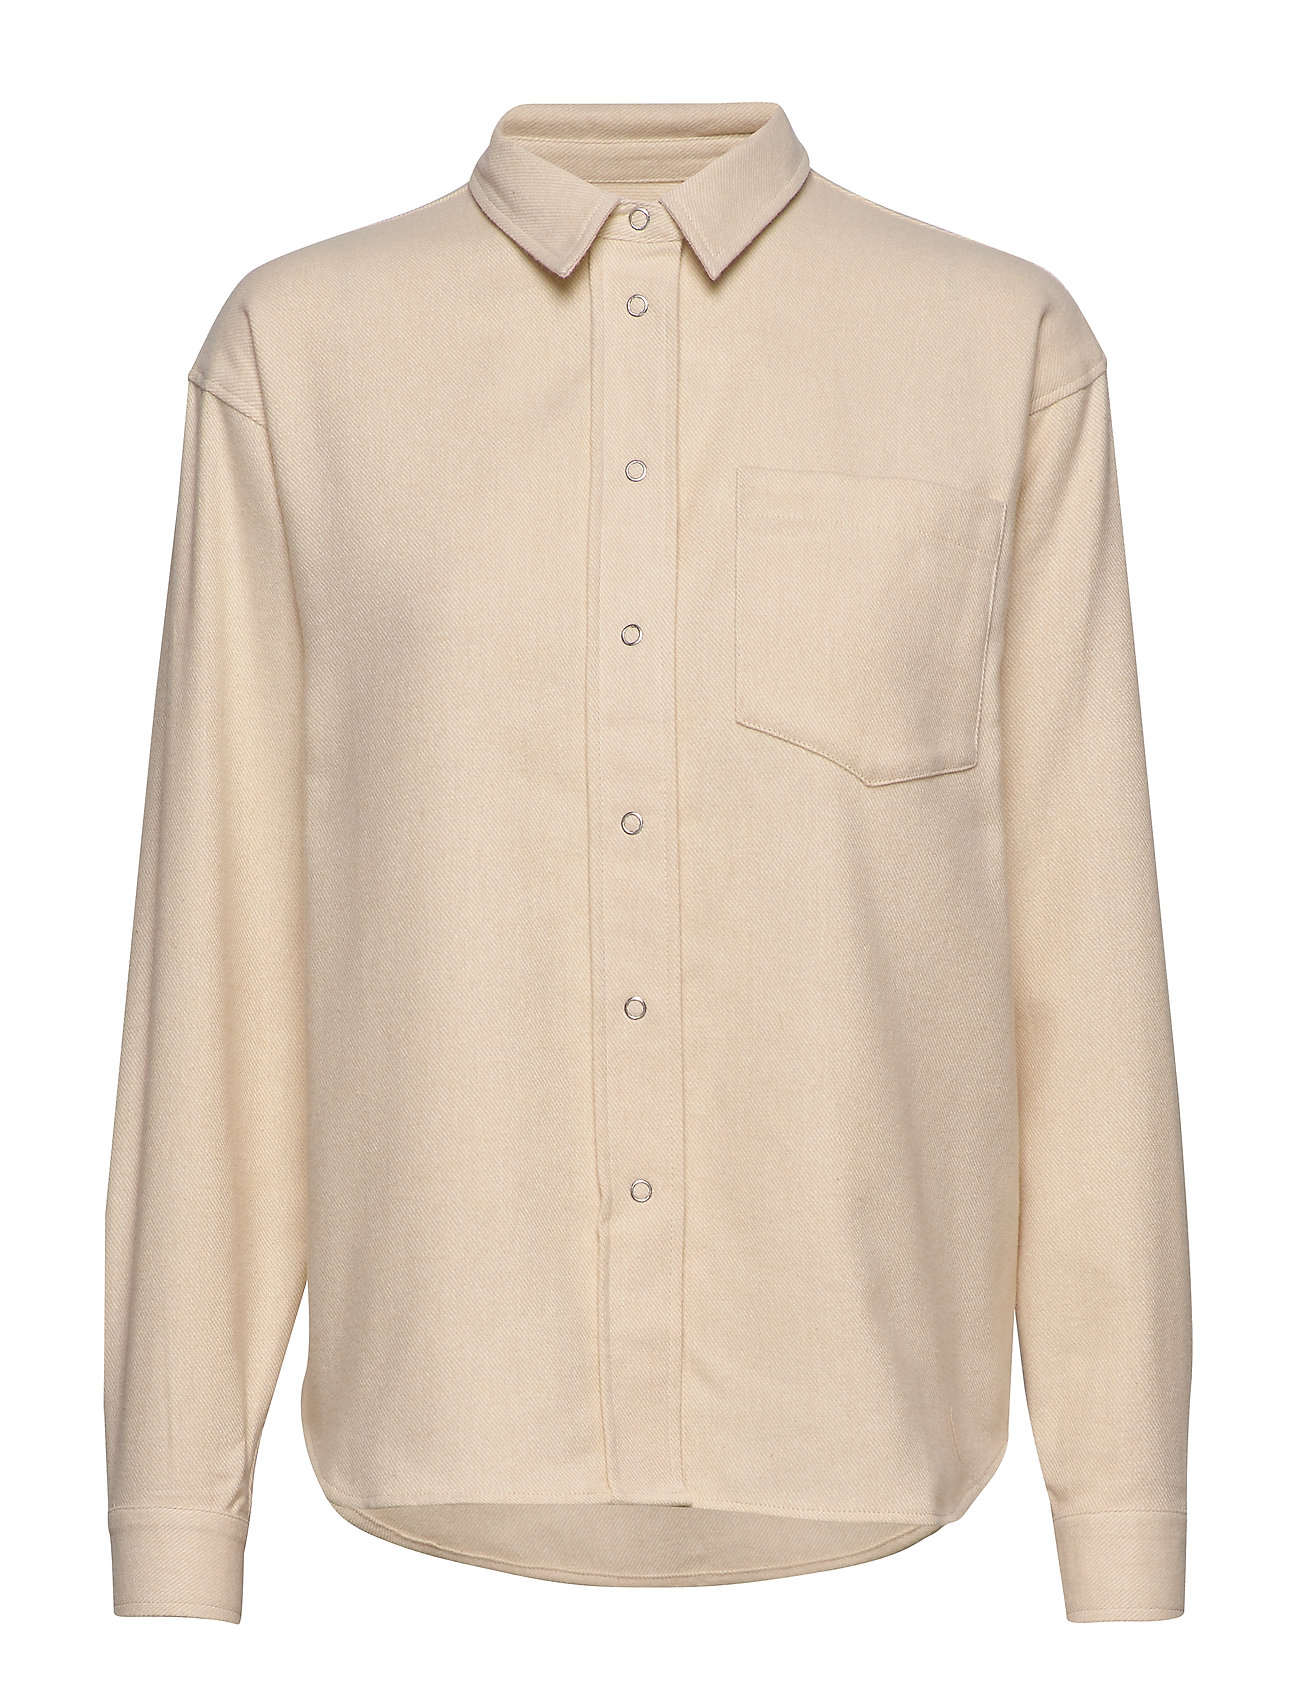 IBEN Sone Shirt ST - FROSTED WHITE